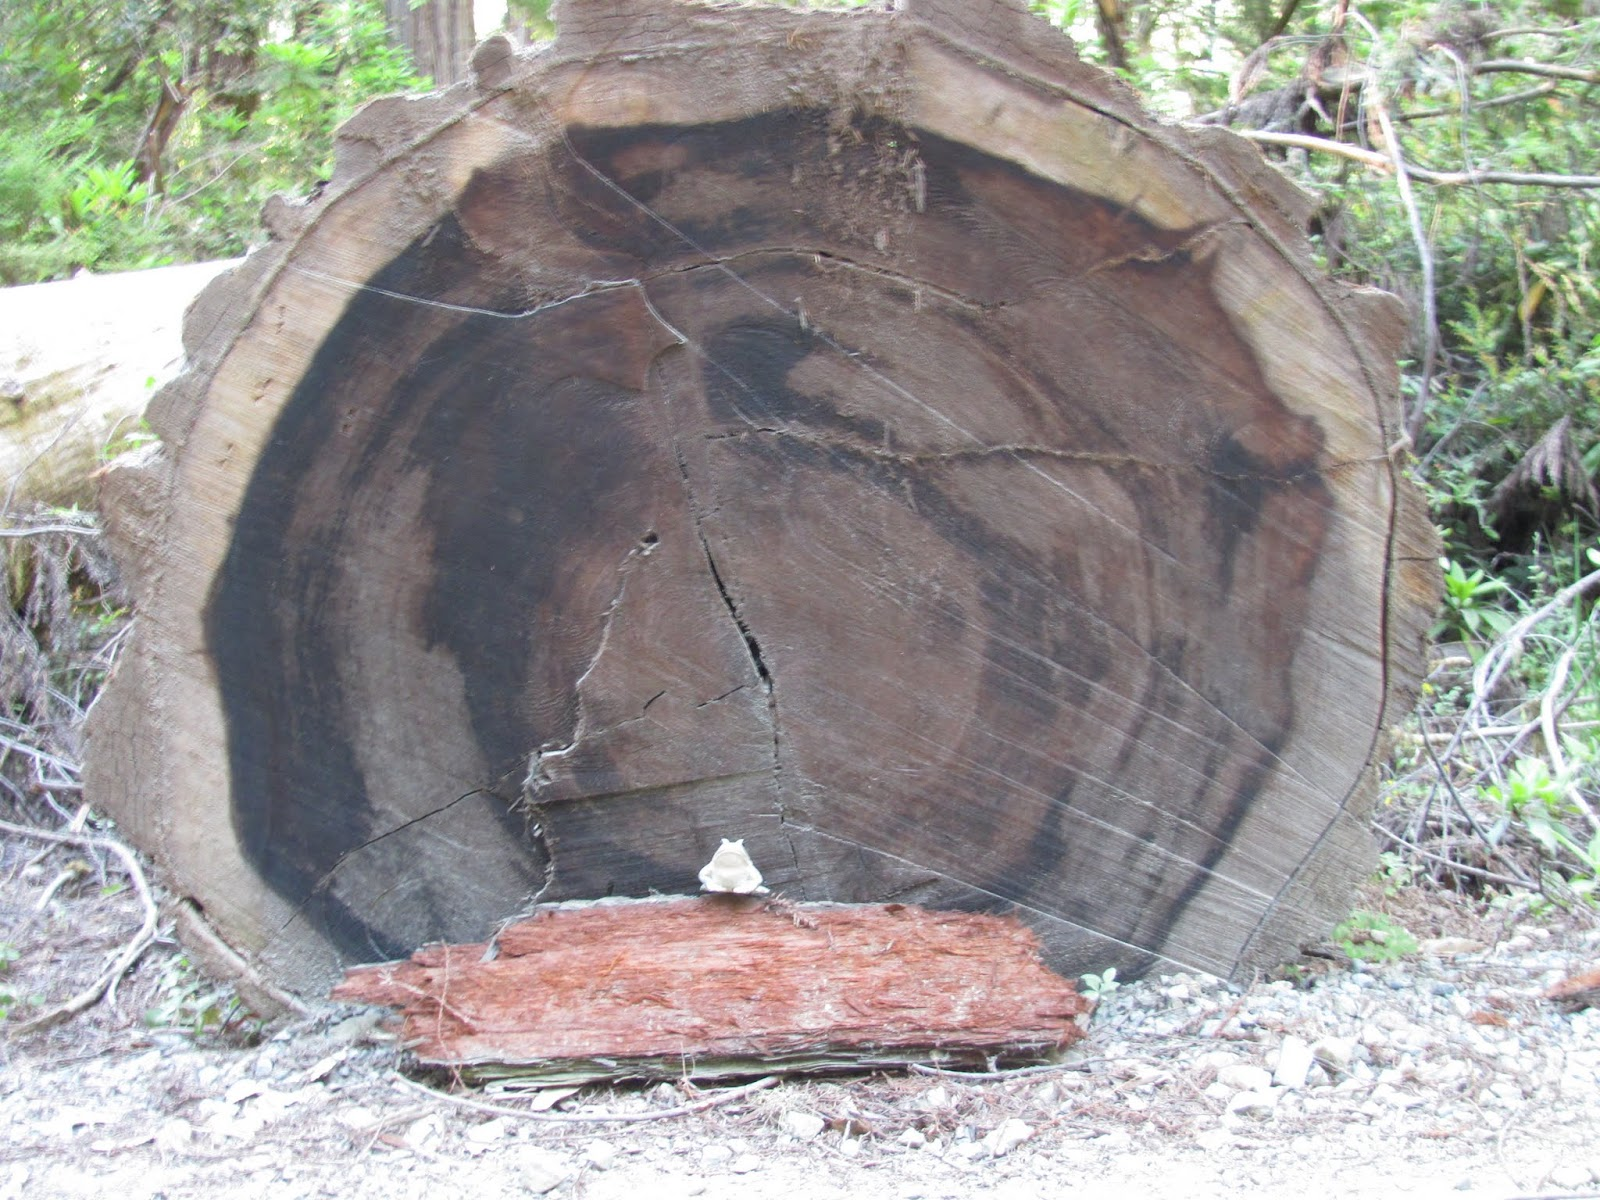 A fallen tree shows its rings with Frog at Jedediah Smith State Park, California